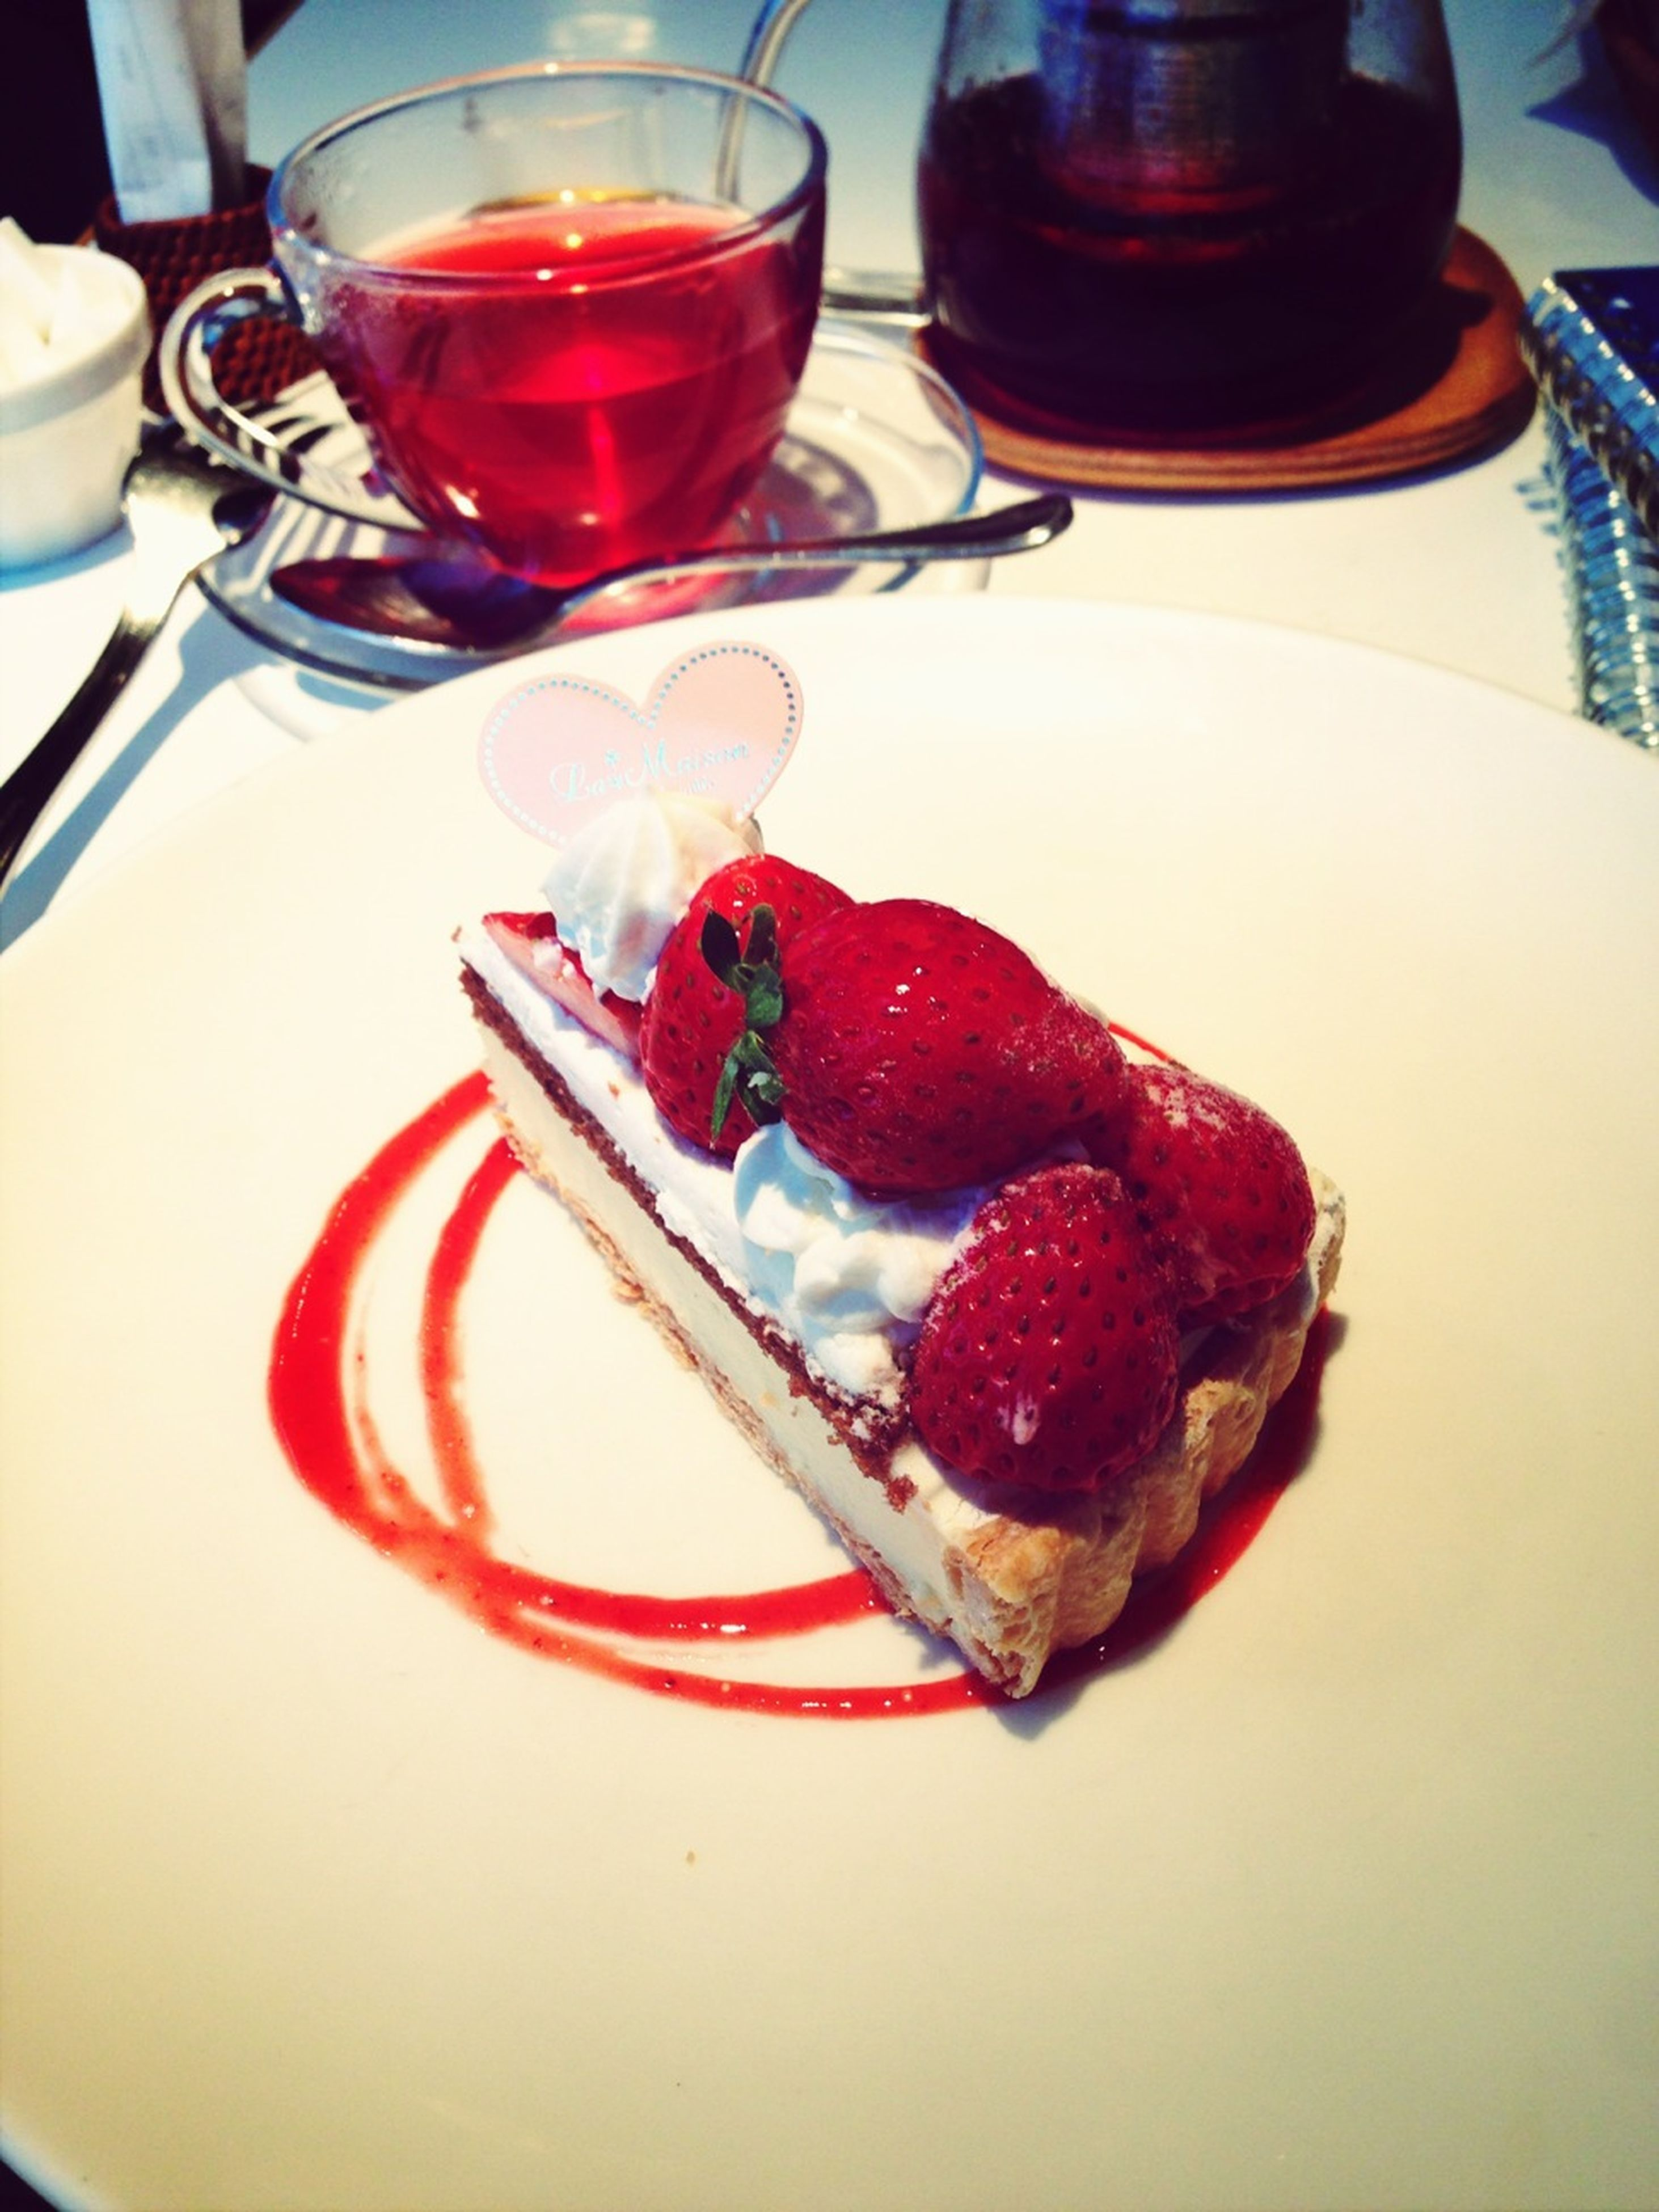 food and drink, food, freshness, sweet food, indoors, dessert, ready-to-eat, strawberry, indulgence, fruit, still life, plate, unhealthy eating, table, cake, temptation, red, close-up, serving size